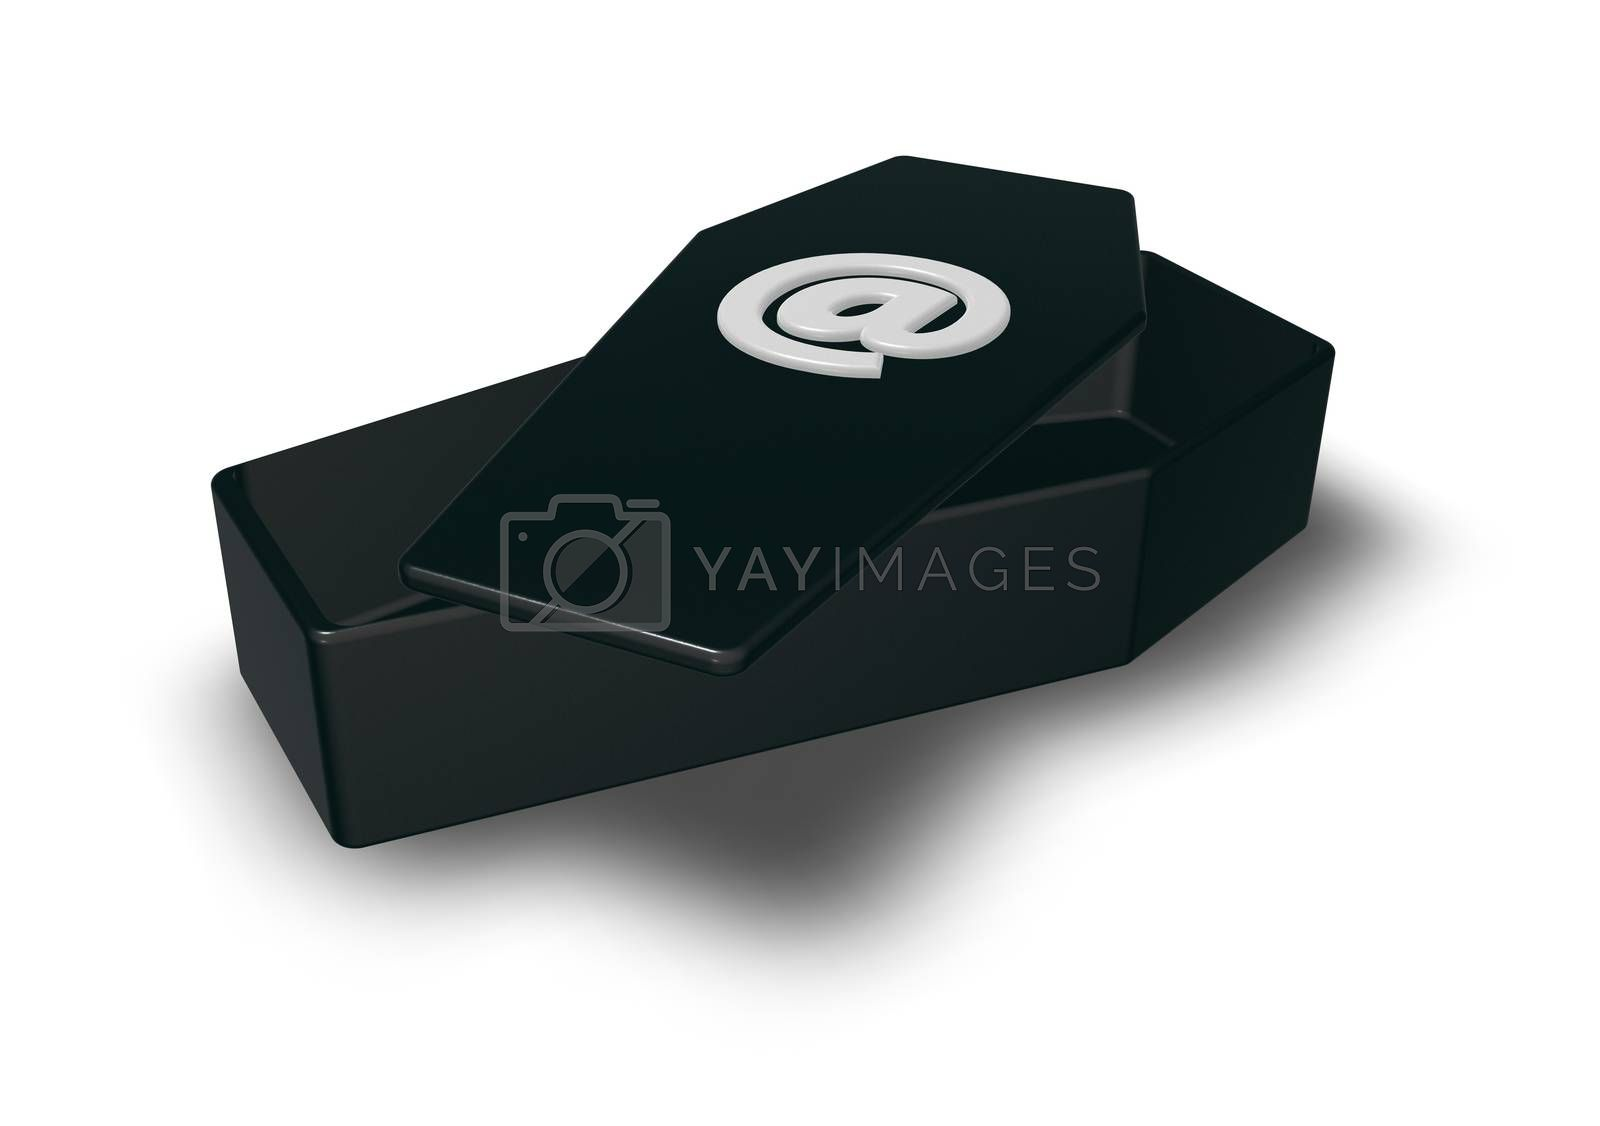 coffin with email symbol - 3d illustration